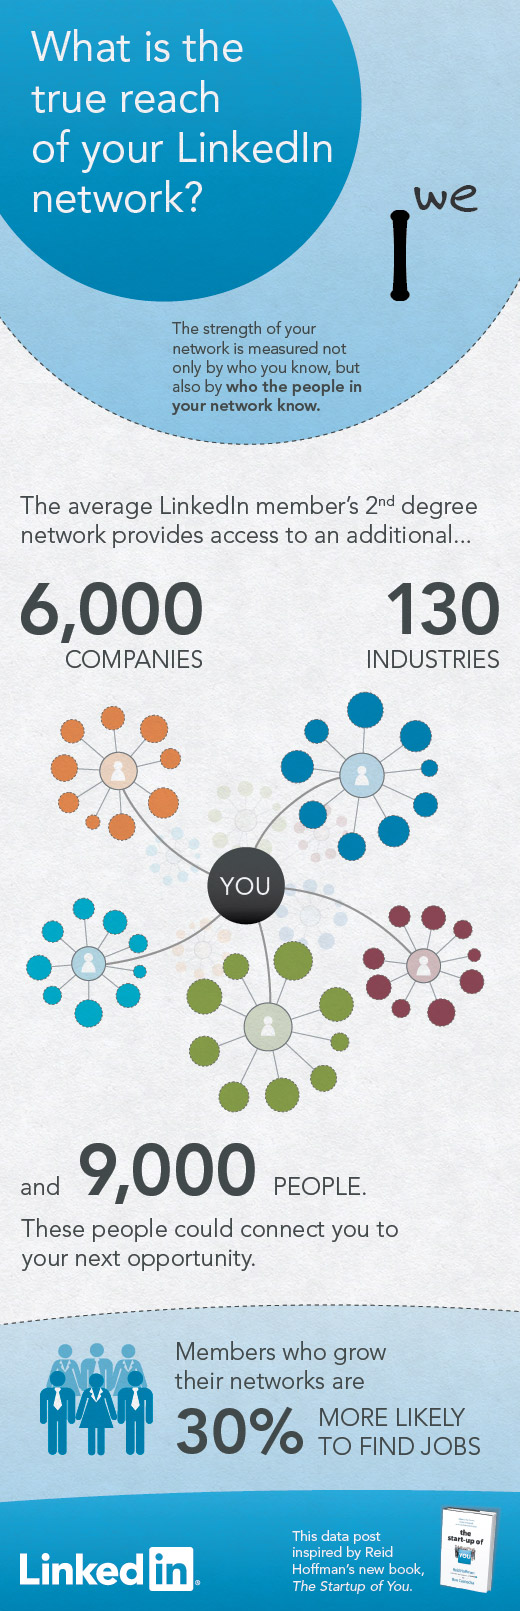 LinkedIn Blog » I to the We – What is the true reach of your LinkedIn Network?